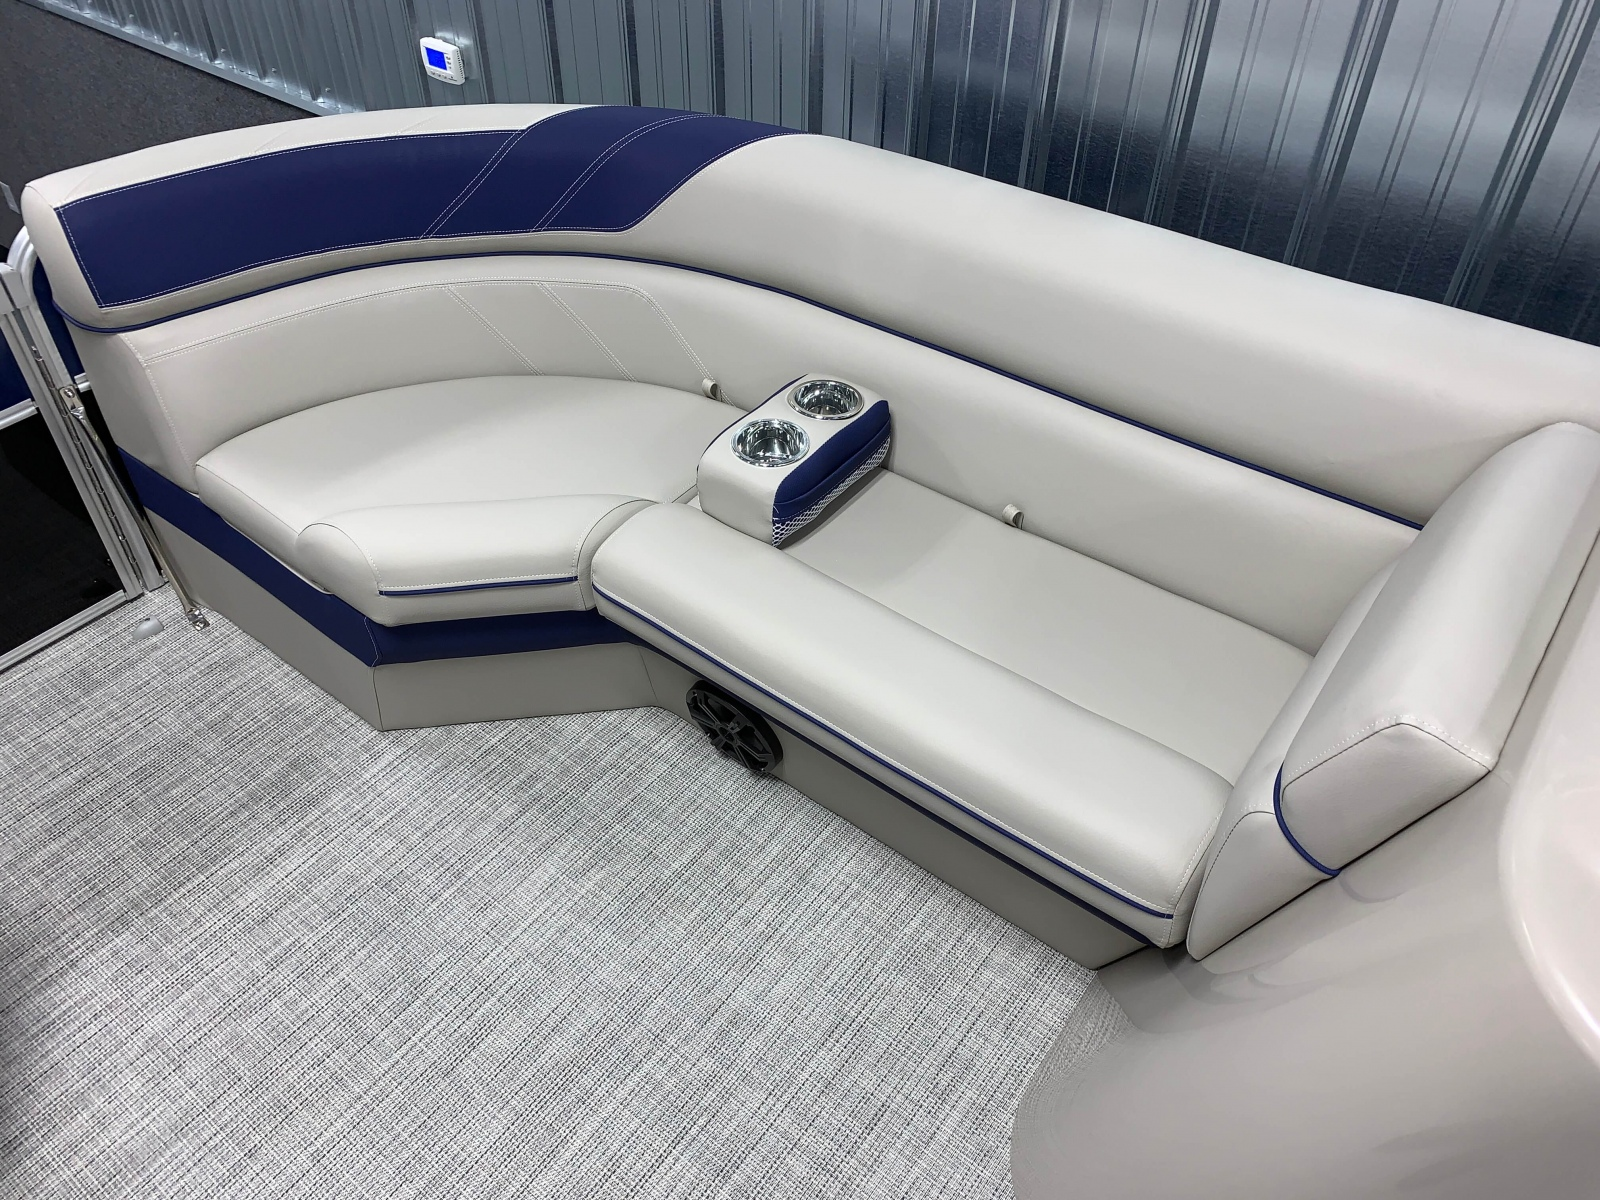 2020-Berkshire-22CL-LE-Pontoon-Boat-Interior-Seating-Layout-7